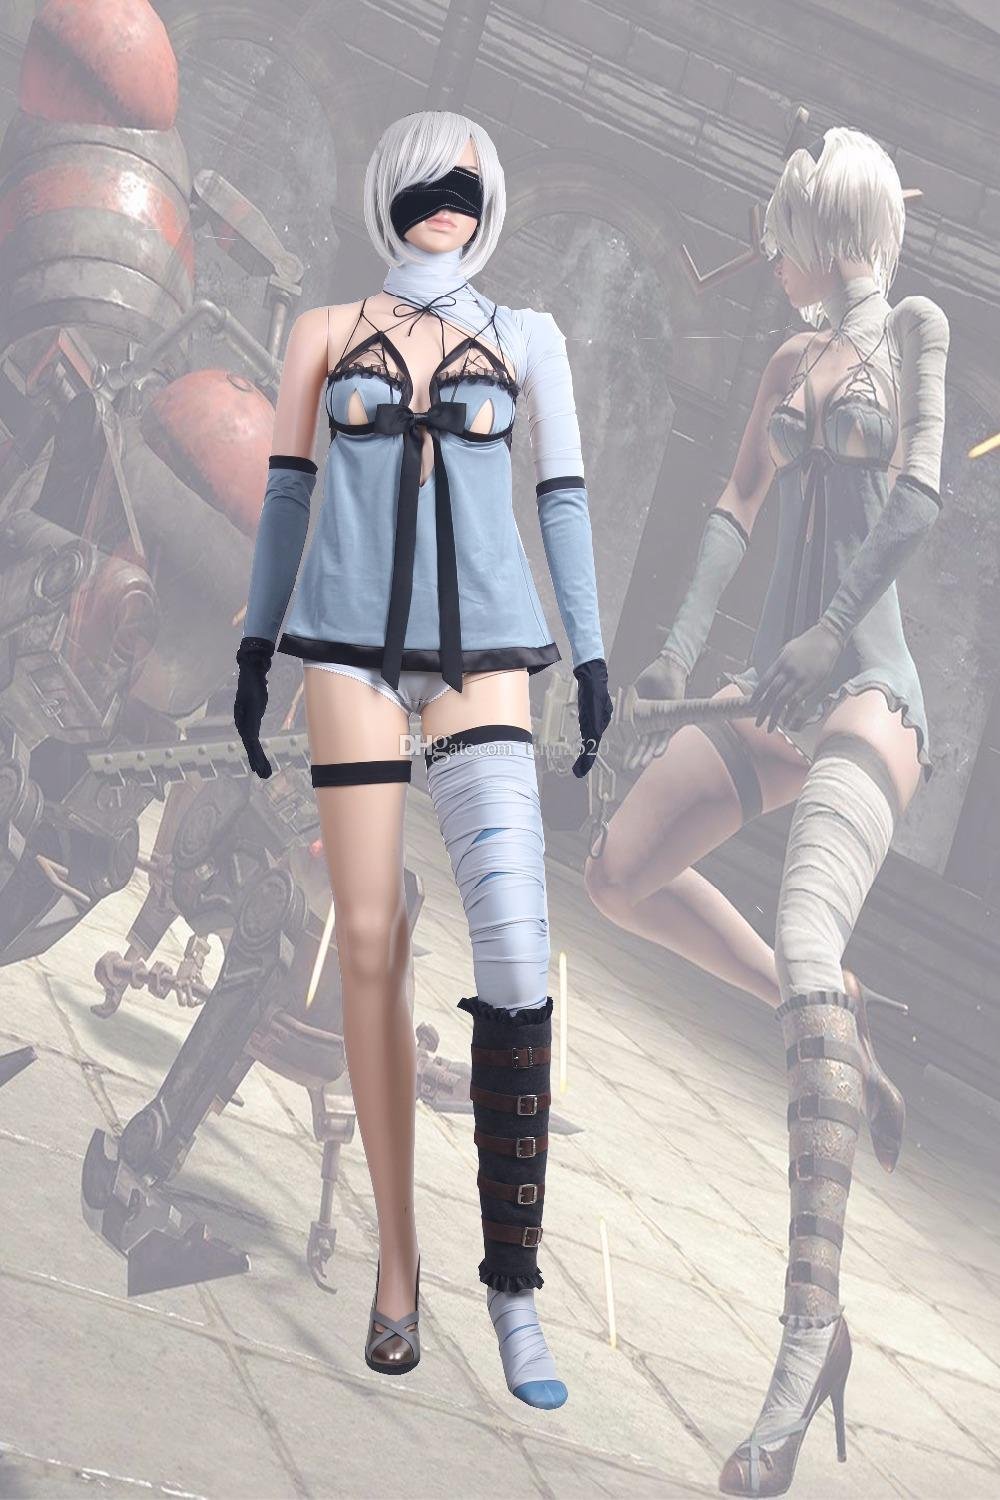 2017 New Game NieR Automata 2B Cosplay Costumes YoRHa No. 2 Type B 2B  Cosplay Adult Full Set Team Halloween Costumes Office Themed Costumes For  Groups From ...